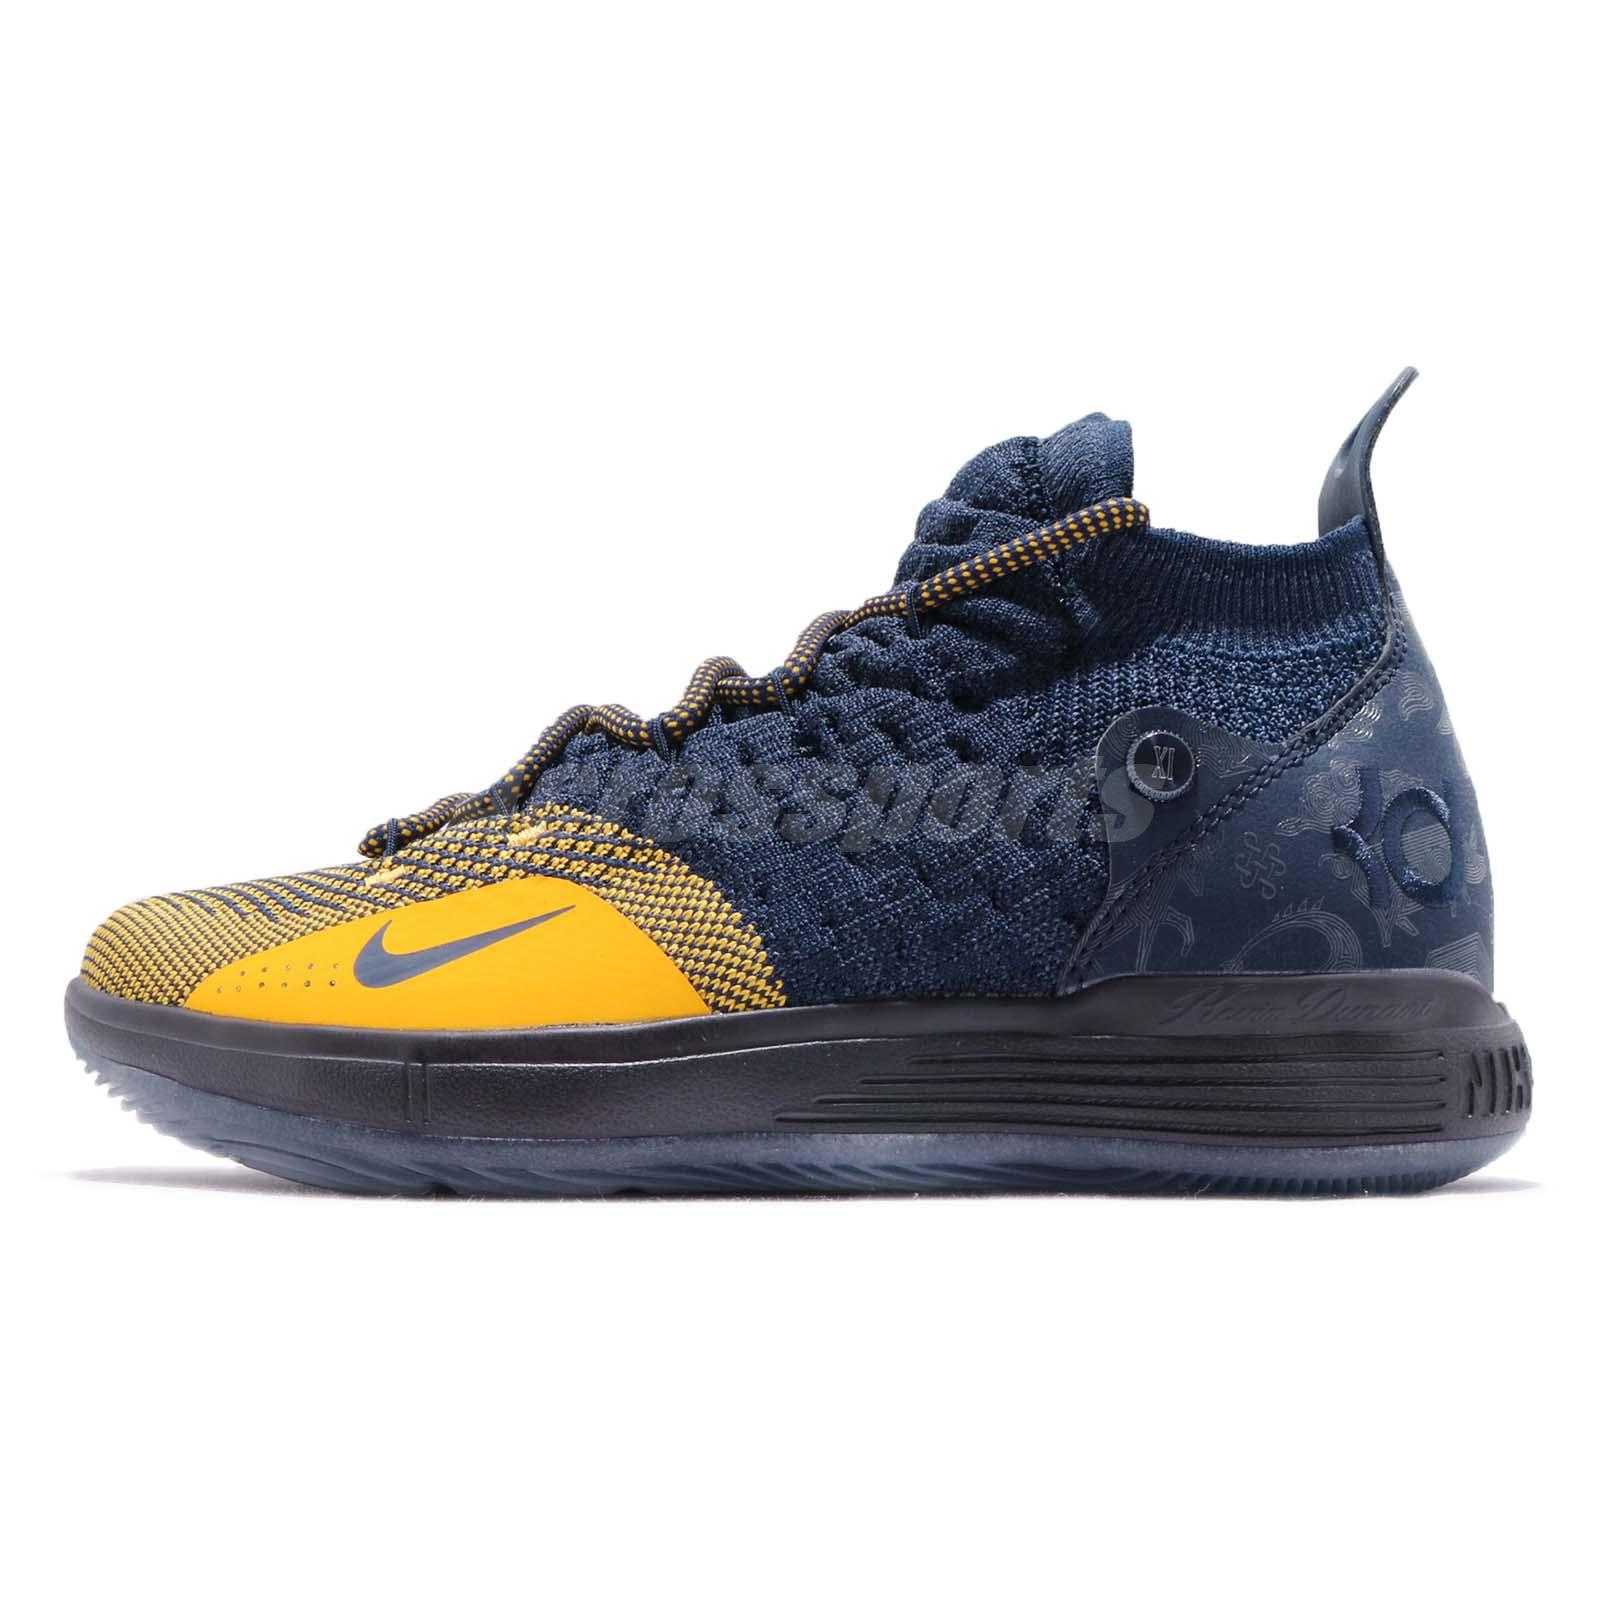 46b8a3b58e59 Nike KD 11 GS XI Chinese Zodiac Michigan Kevin Durant Navy Kid Women  AH3465-400